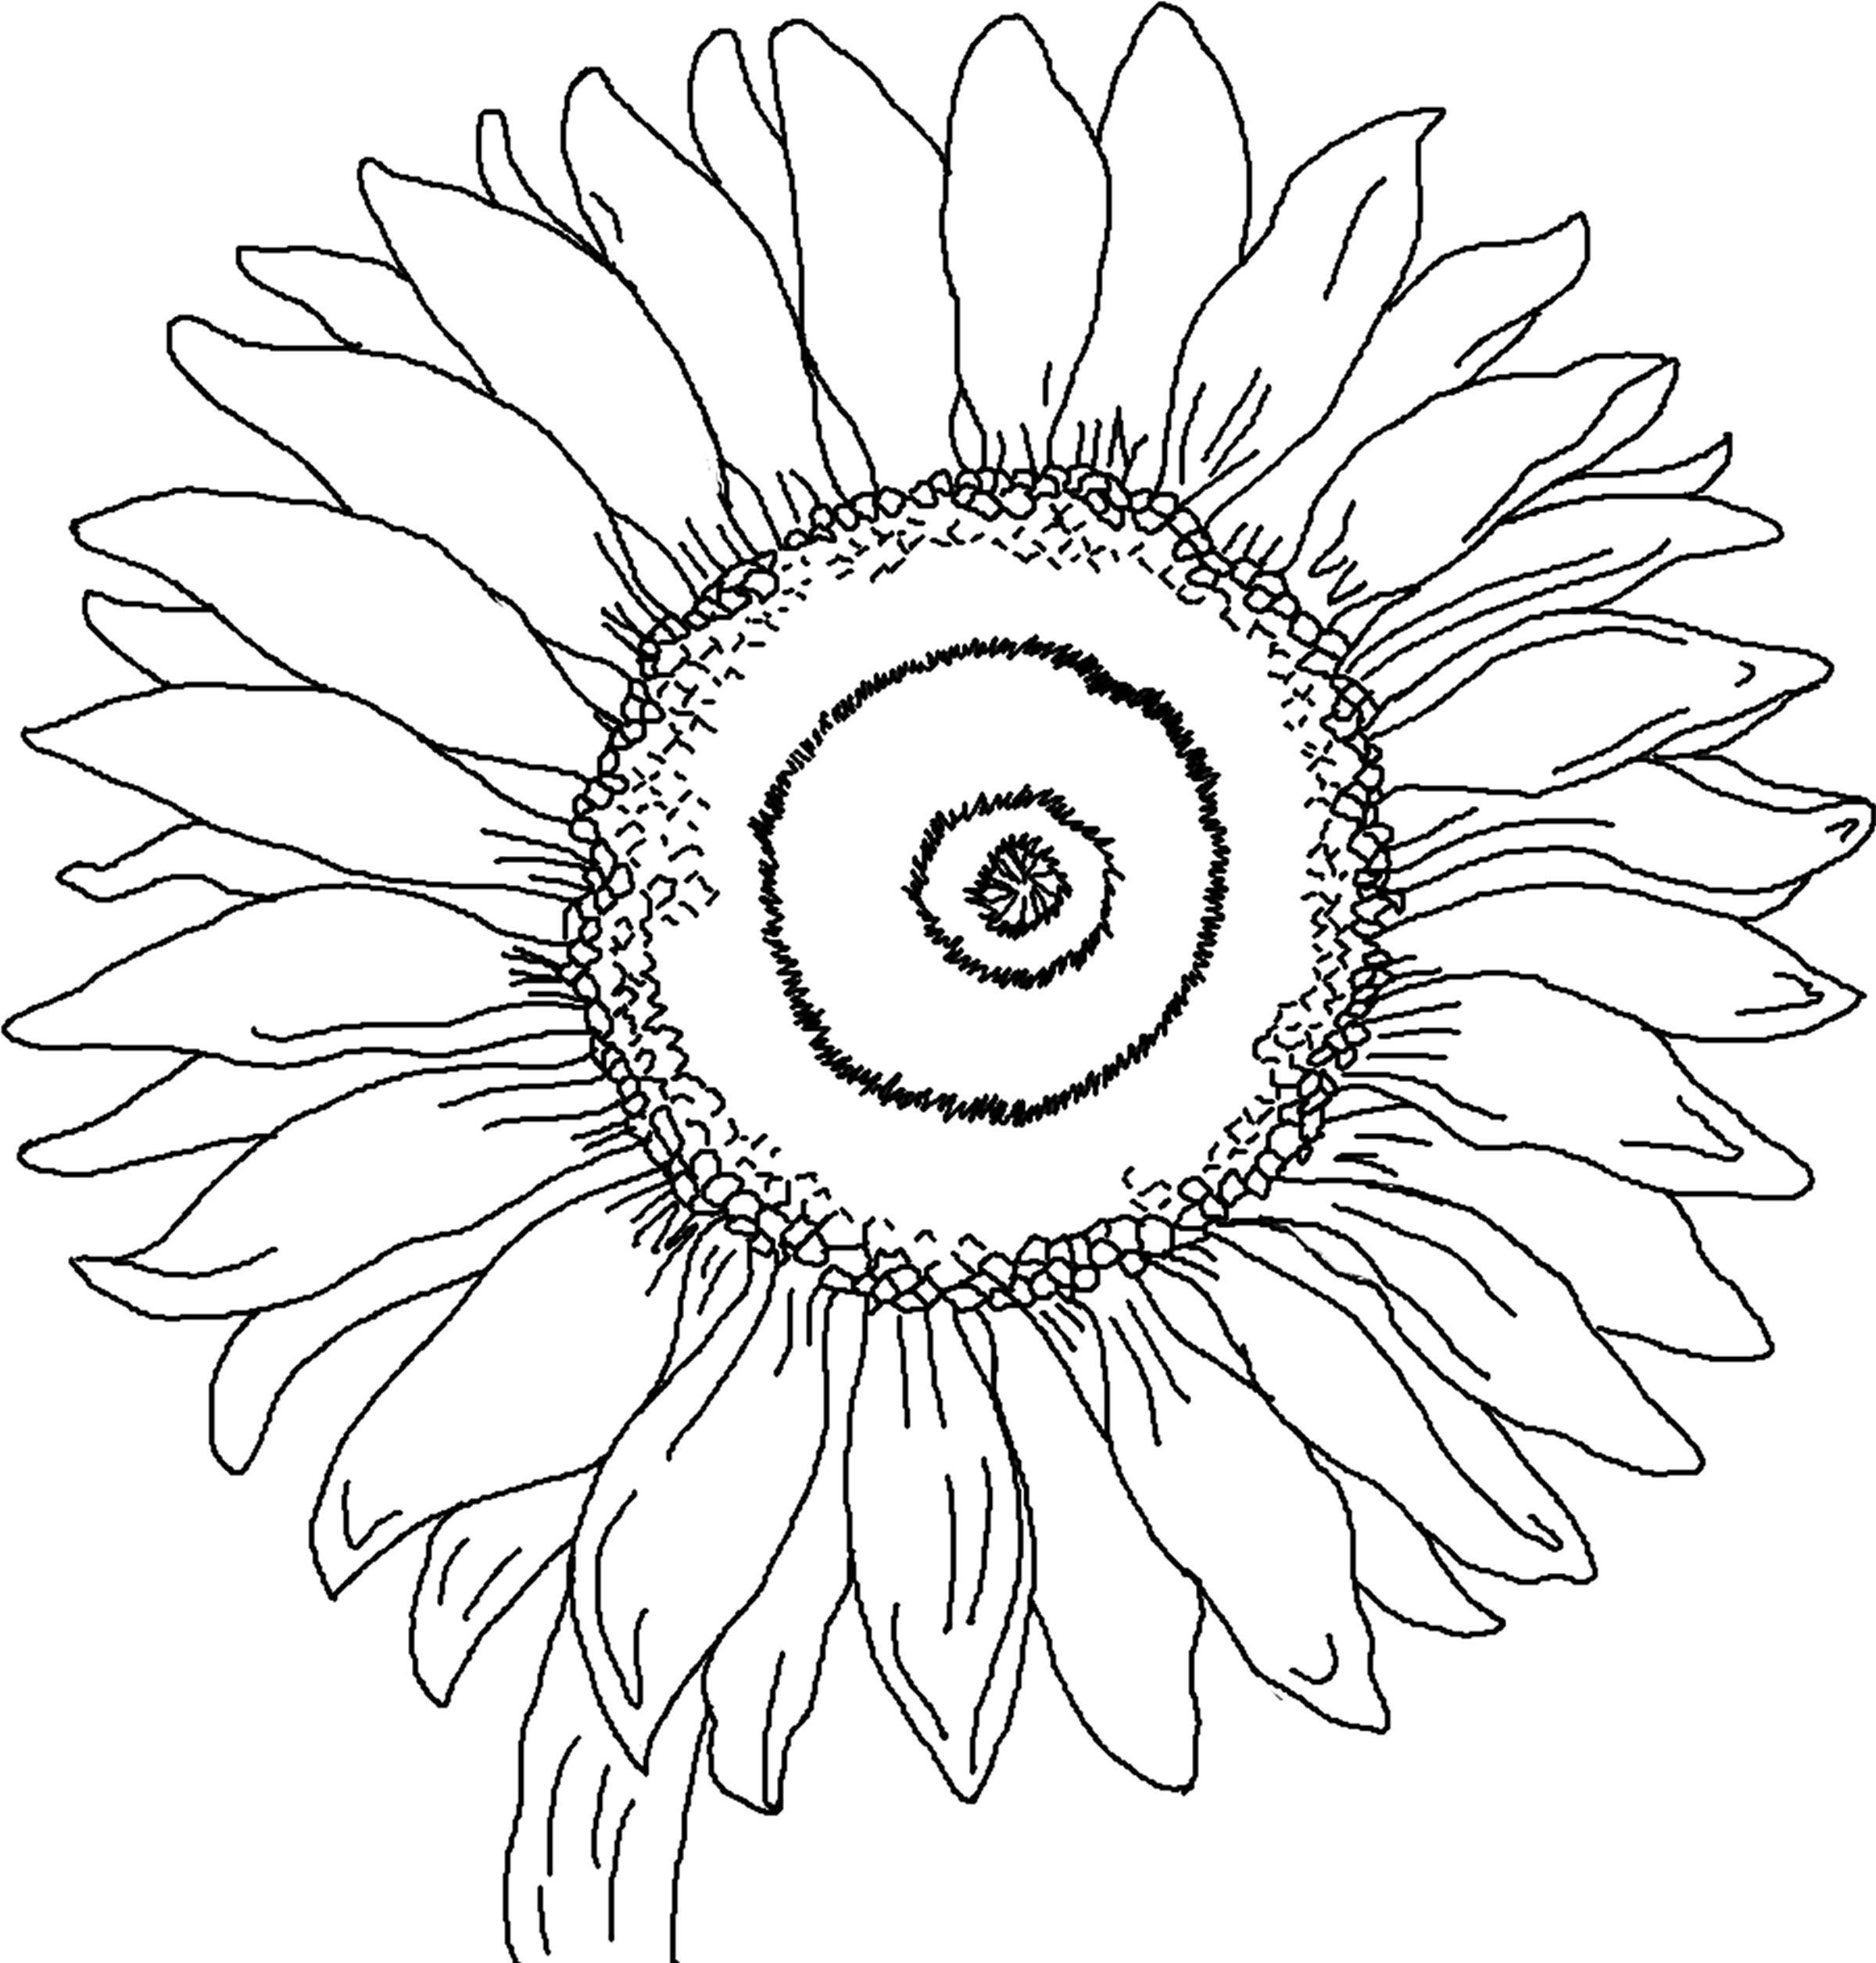 16 Sunflower Coloring Pages